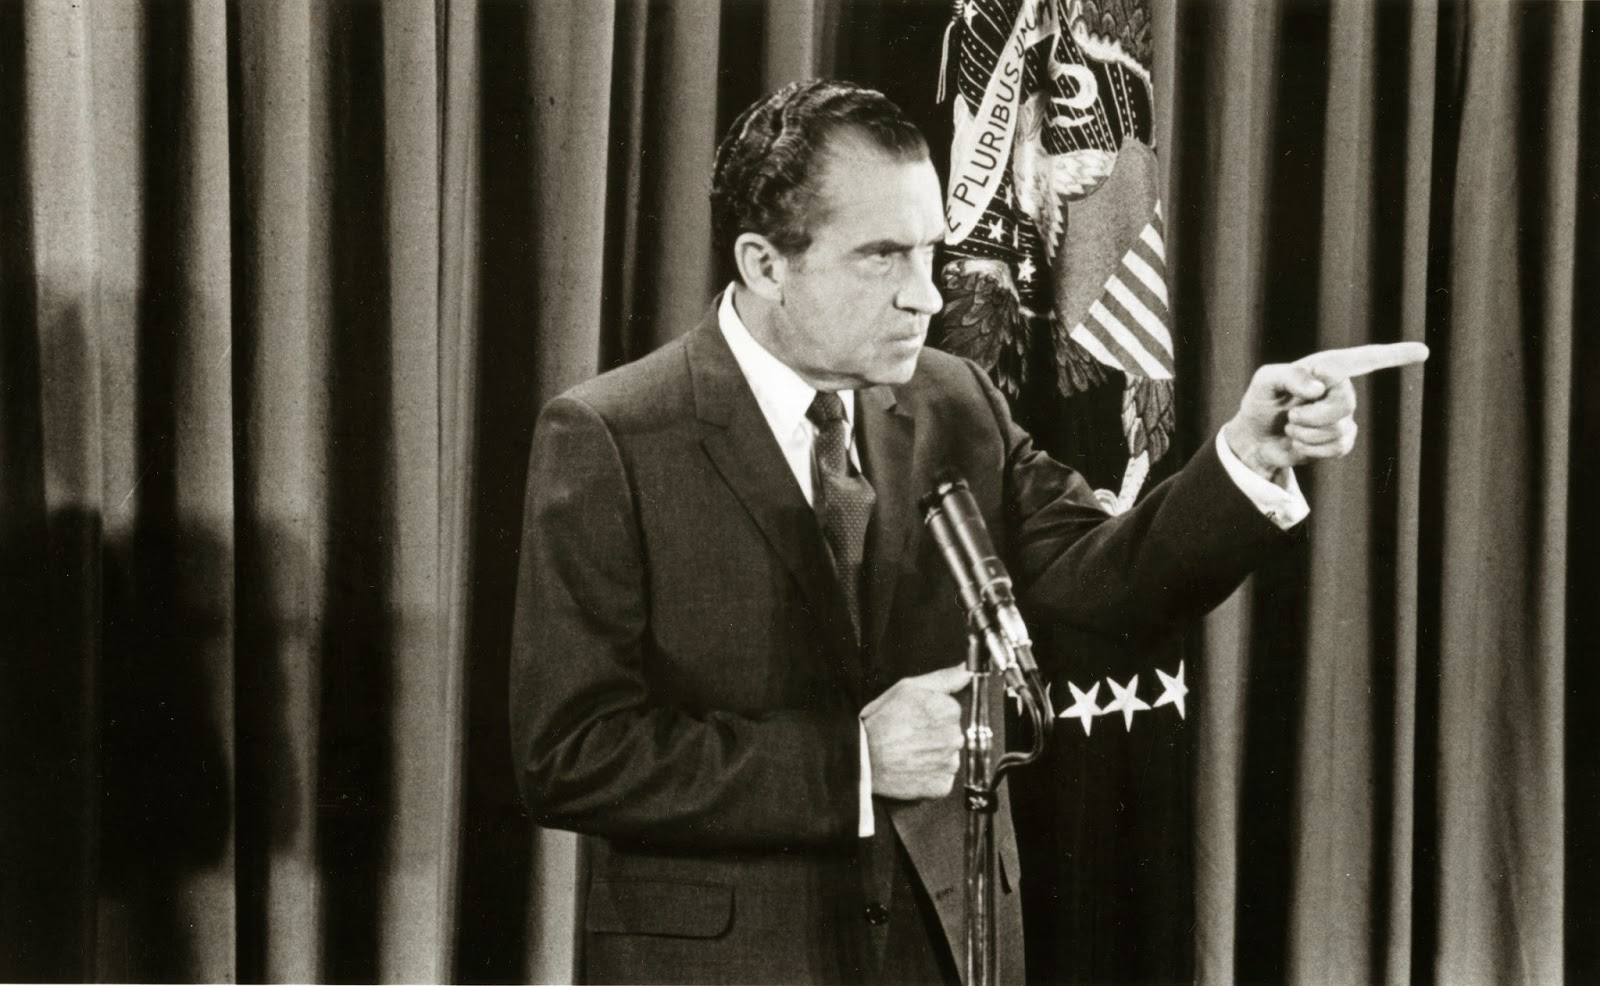 an analysis of the life and accomplishments of richard nixon Book review: 'being nixon:  being nixon: a man divided  able to look at richard nixon's accomplishments as well as his failures,.